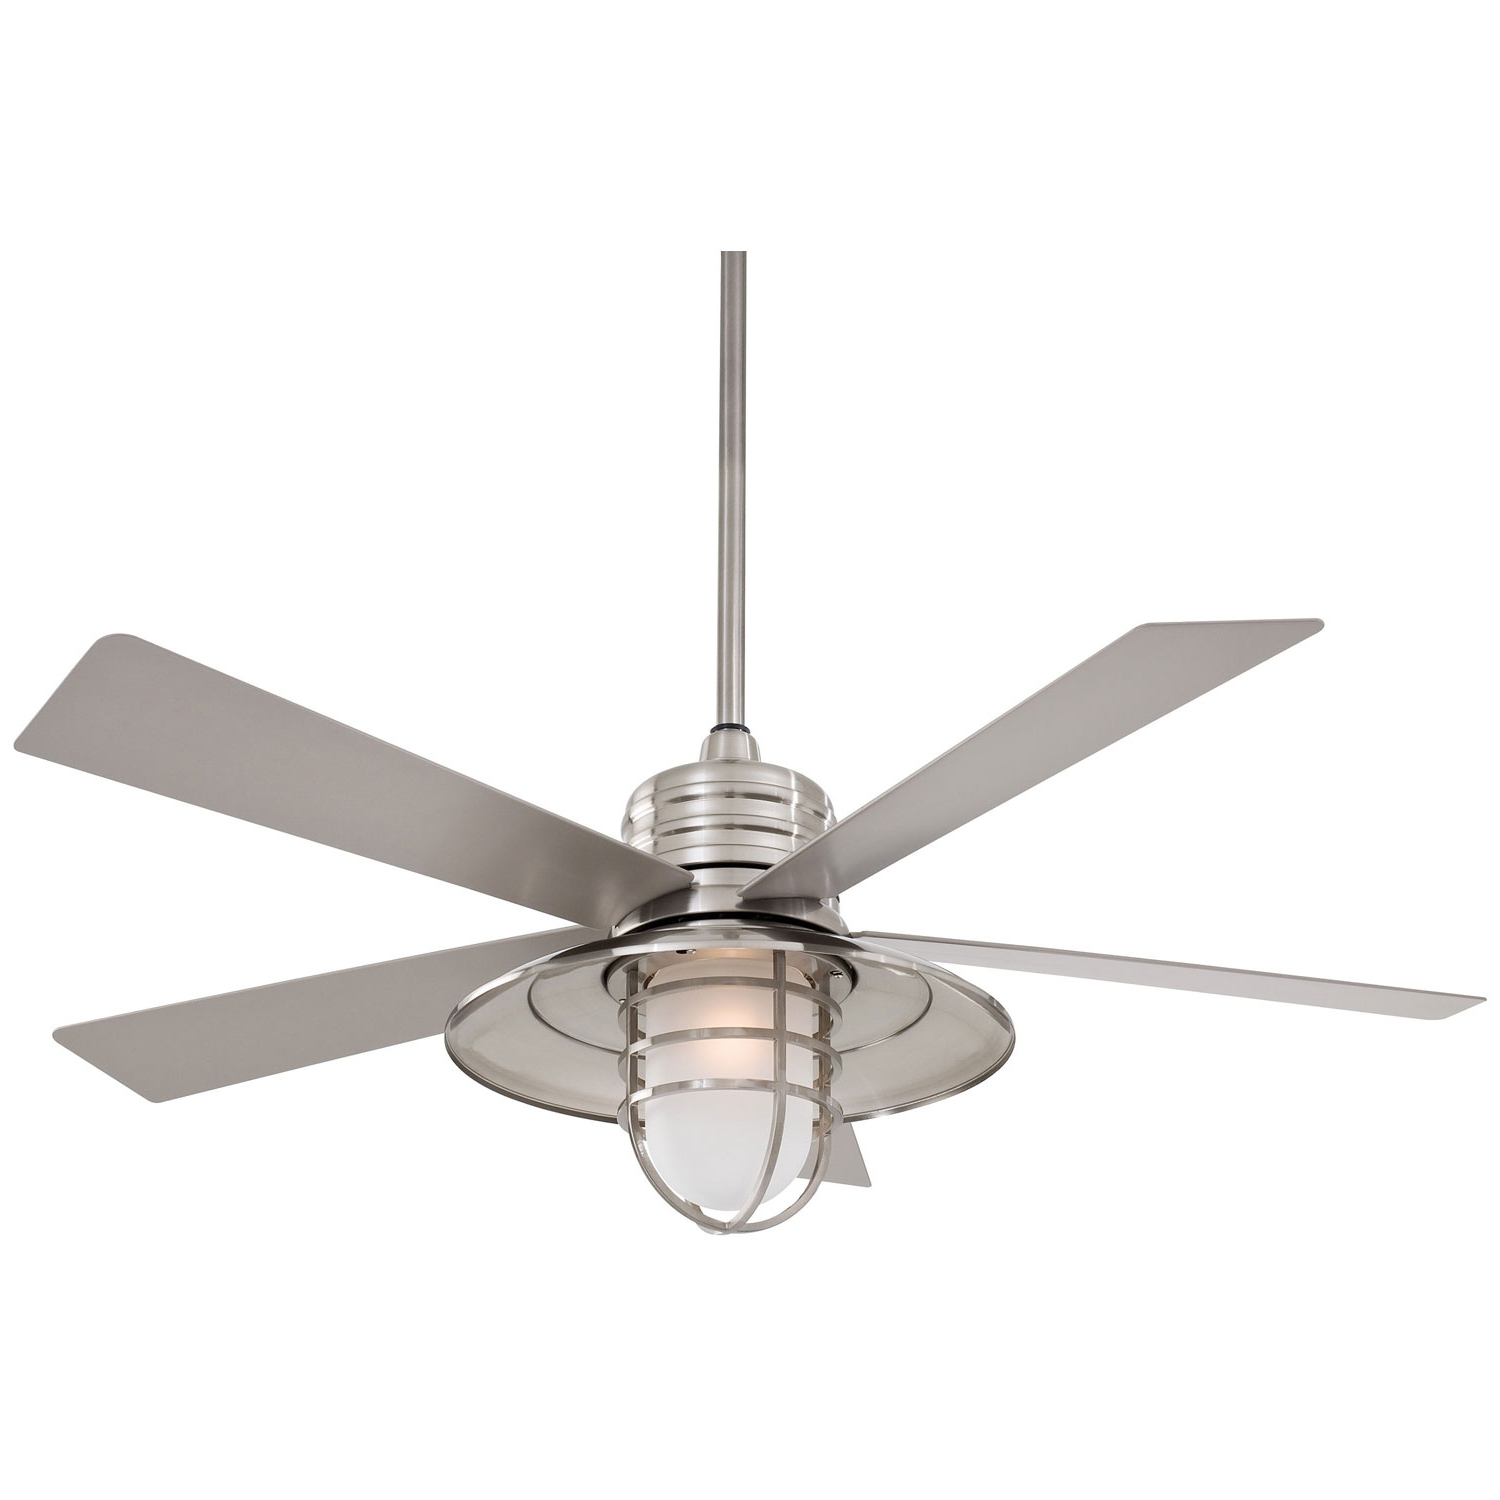 Outdoor Ceiling Fans For Wet Areas Pertaining To Well Liked Minka Aire Rainman Brushed Nickel 54 Inch Blade Indoor/outdoor (View 16 of 20)